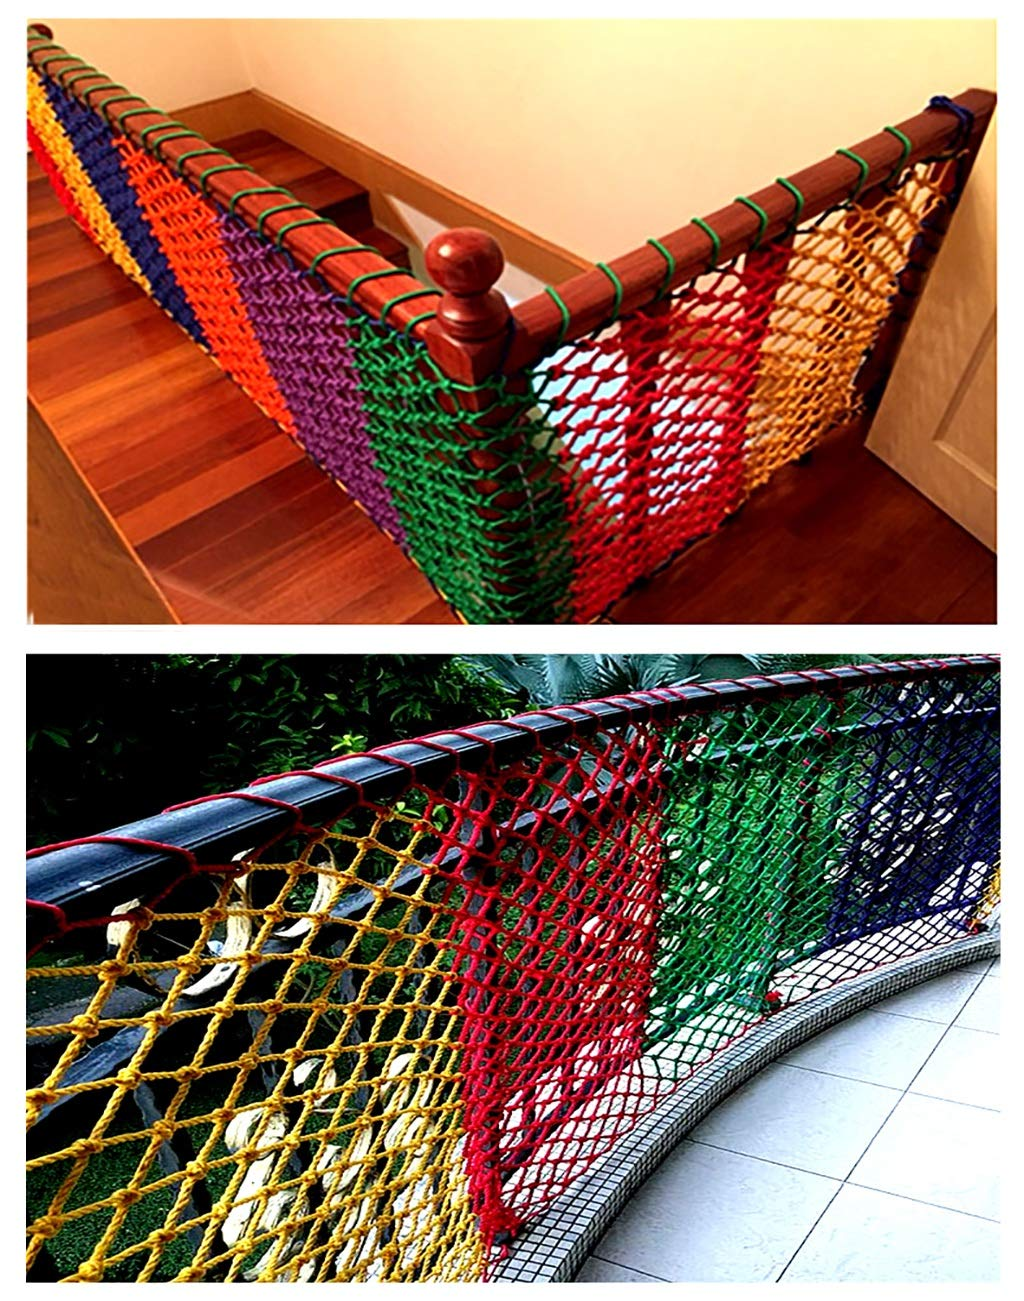 Wathet Child safety net protective net balcony stairs anti-fall net kindergarten color decorative net fence network Width 1/4M Length 1M /9M Hand braided traditional structure (Size : 4 * 5)  [Protect children's safety]: Many children fall from the building, let us understand that the safety of children can not be ignored. [Polyester knotless woven mesh]: The mesh surface has large pulling force, and the double needle has no knot woven mesh hole, so that the mesh has stronger impact resistance. [wire diameter 6MM, mesh spacing 6CM]: Escort for baby safety.(Others available in our shop) 50